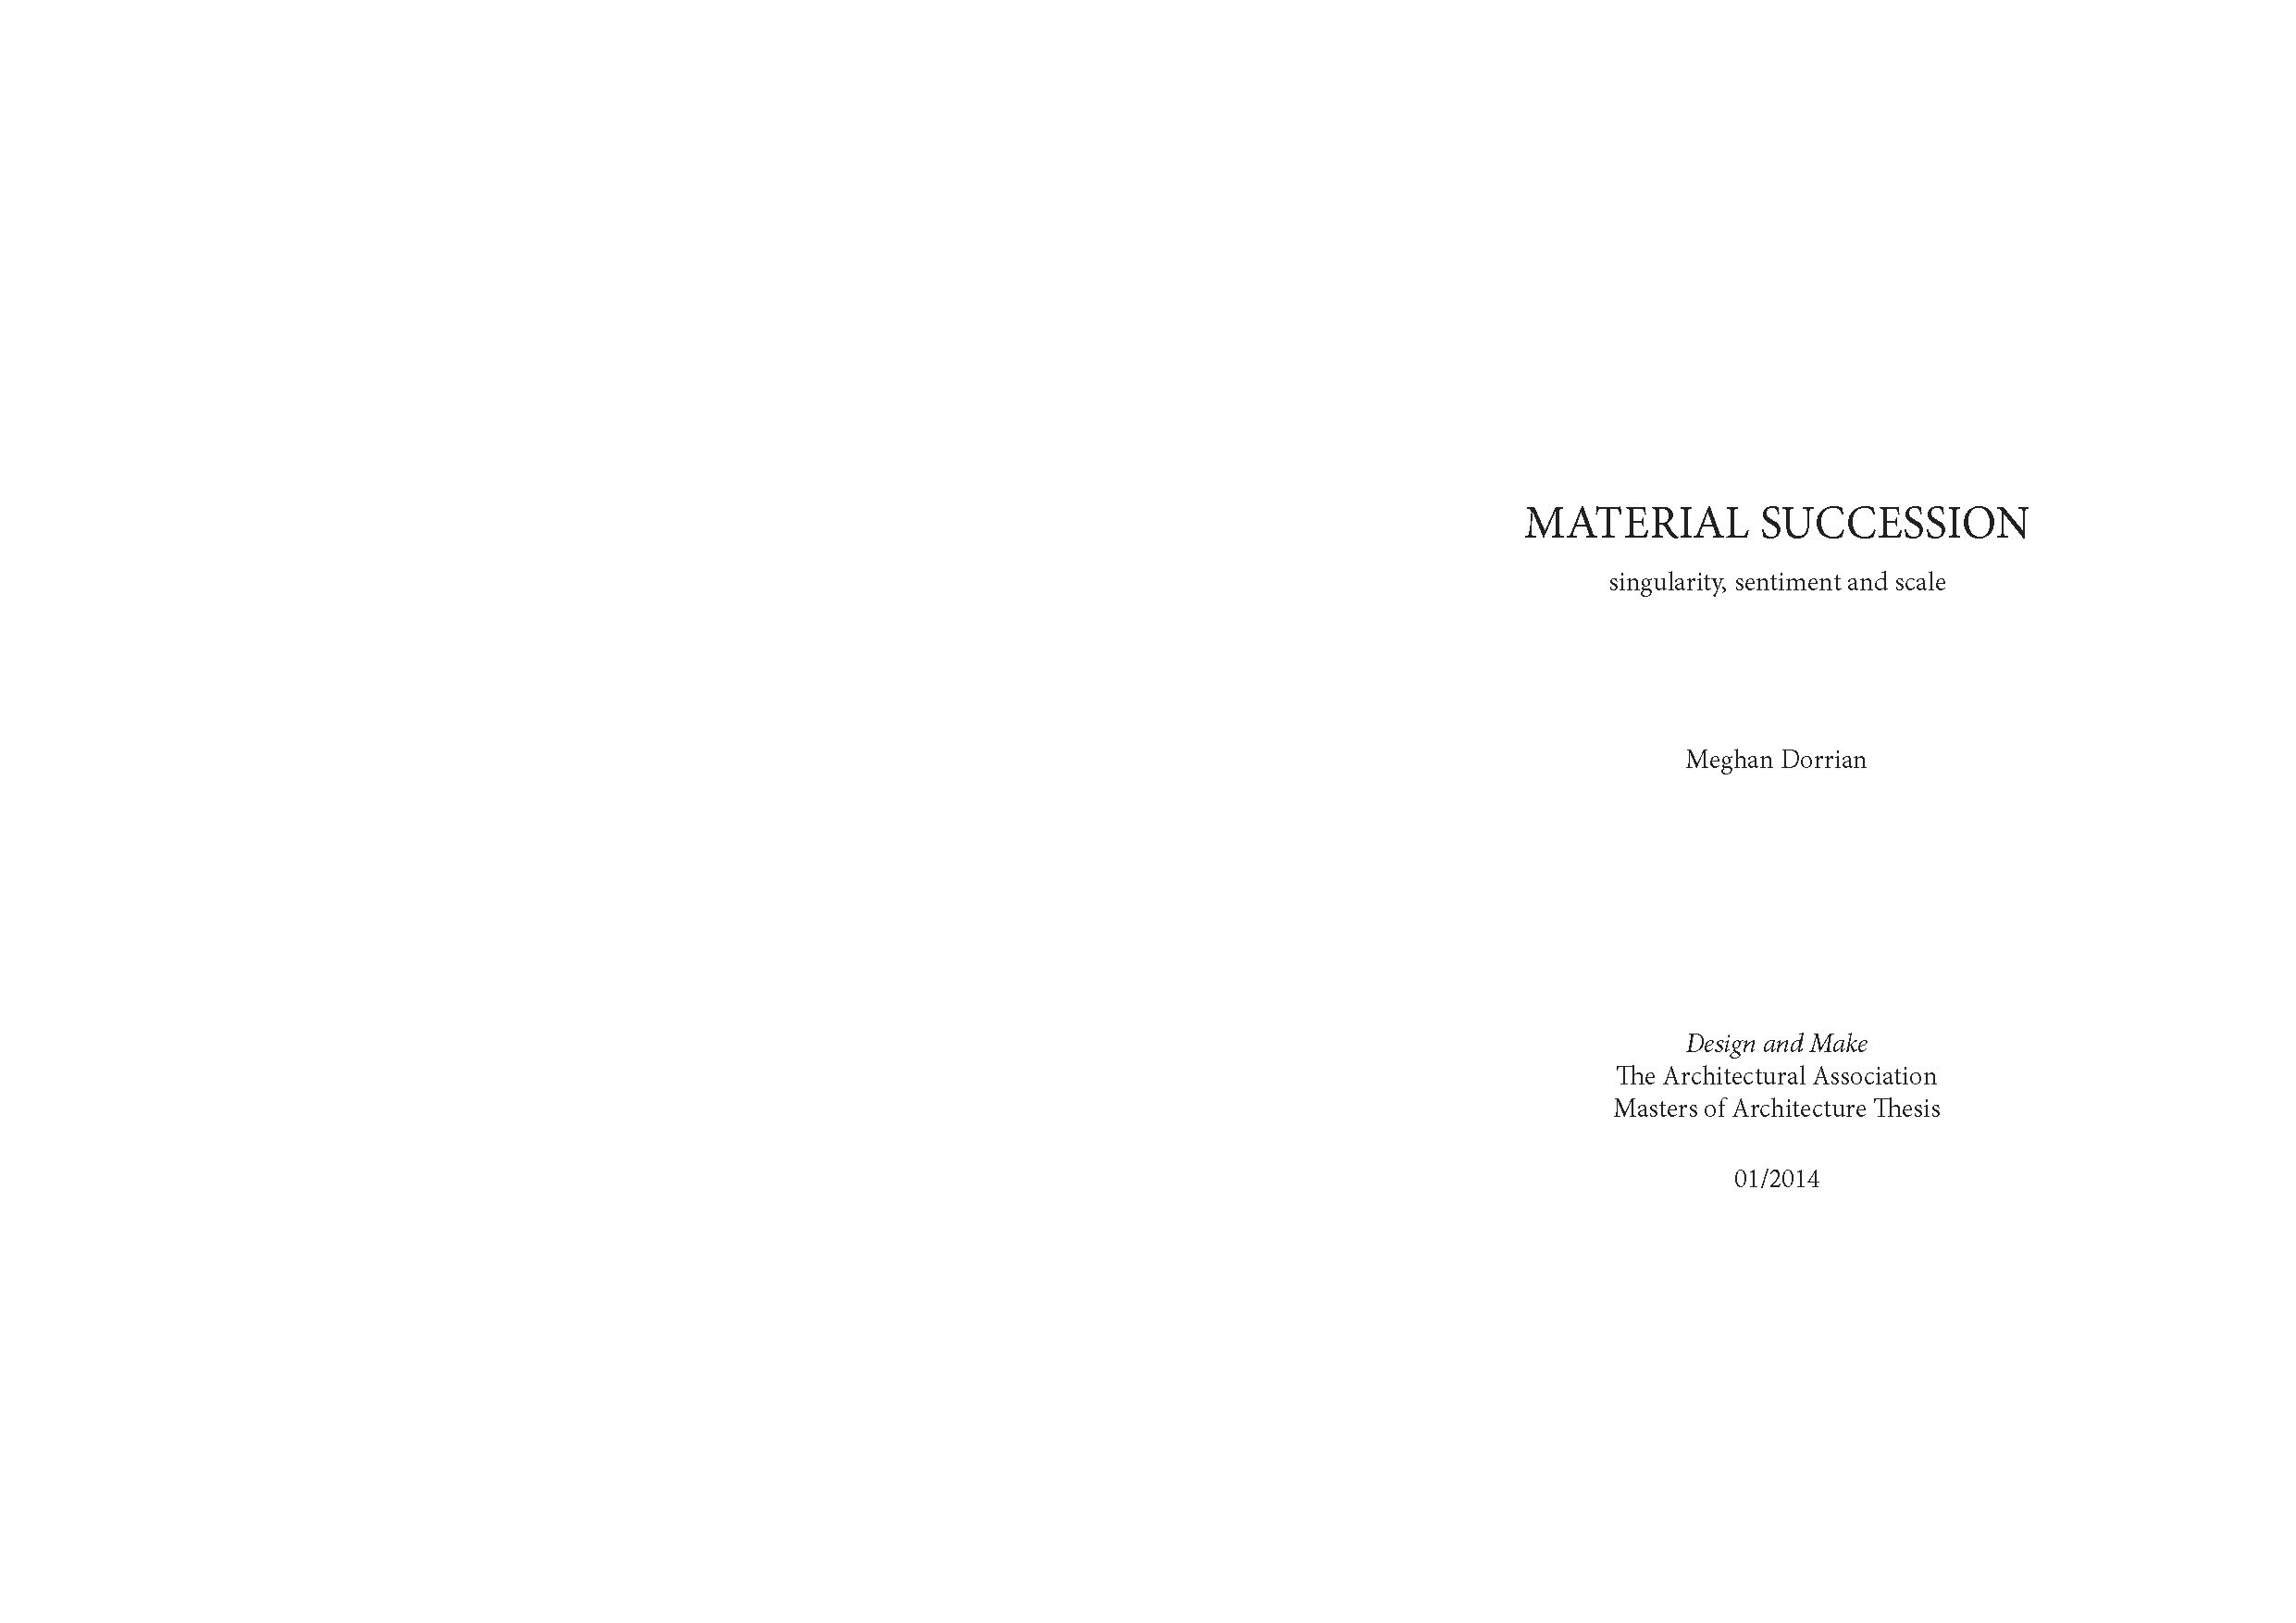 130131_Material SuccessionFORSUBMITTAL_Page_02.jpg